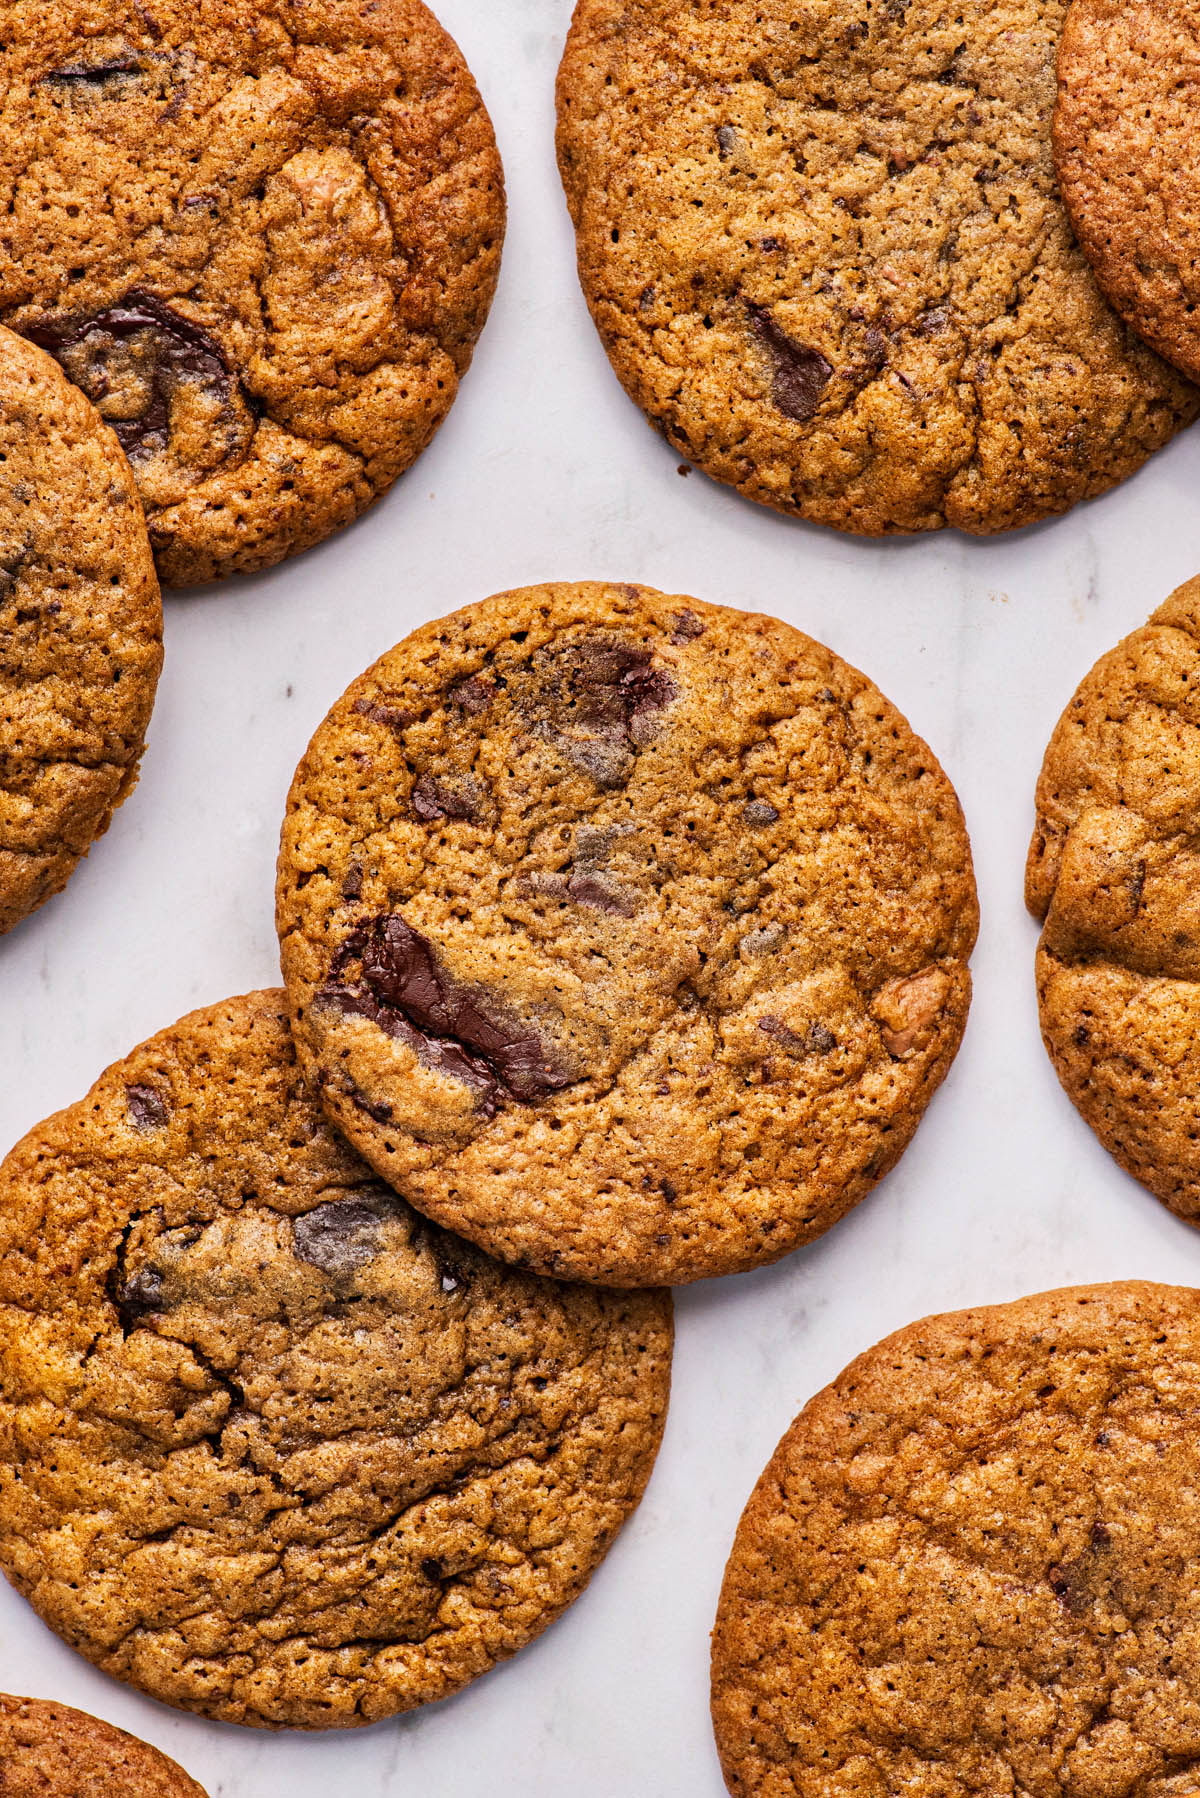 Several chocolate chunk cookies on a pale marble background.